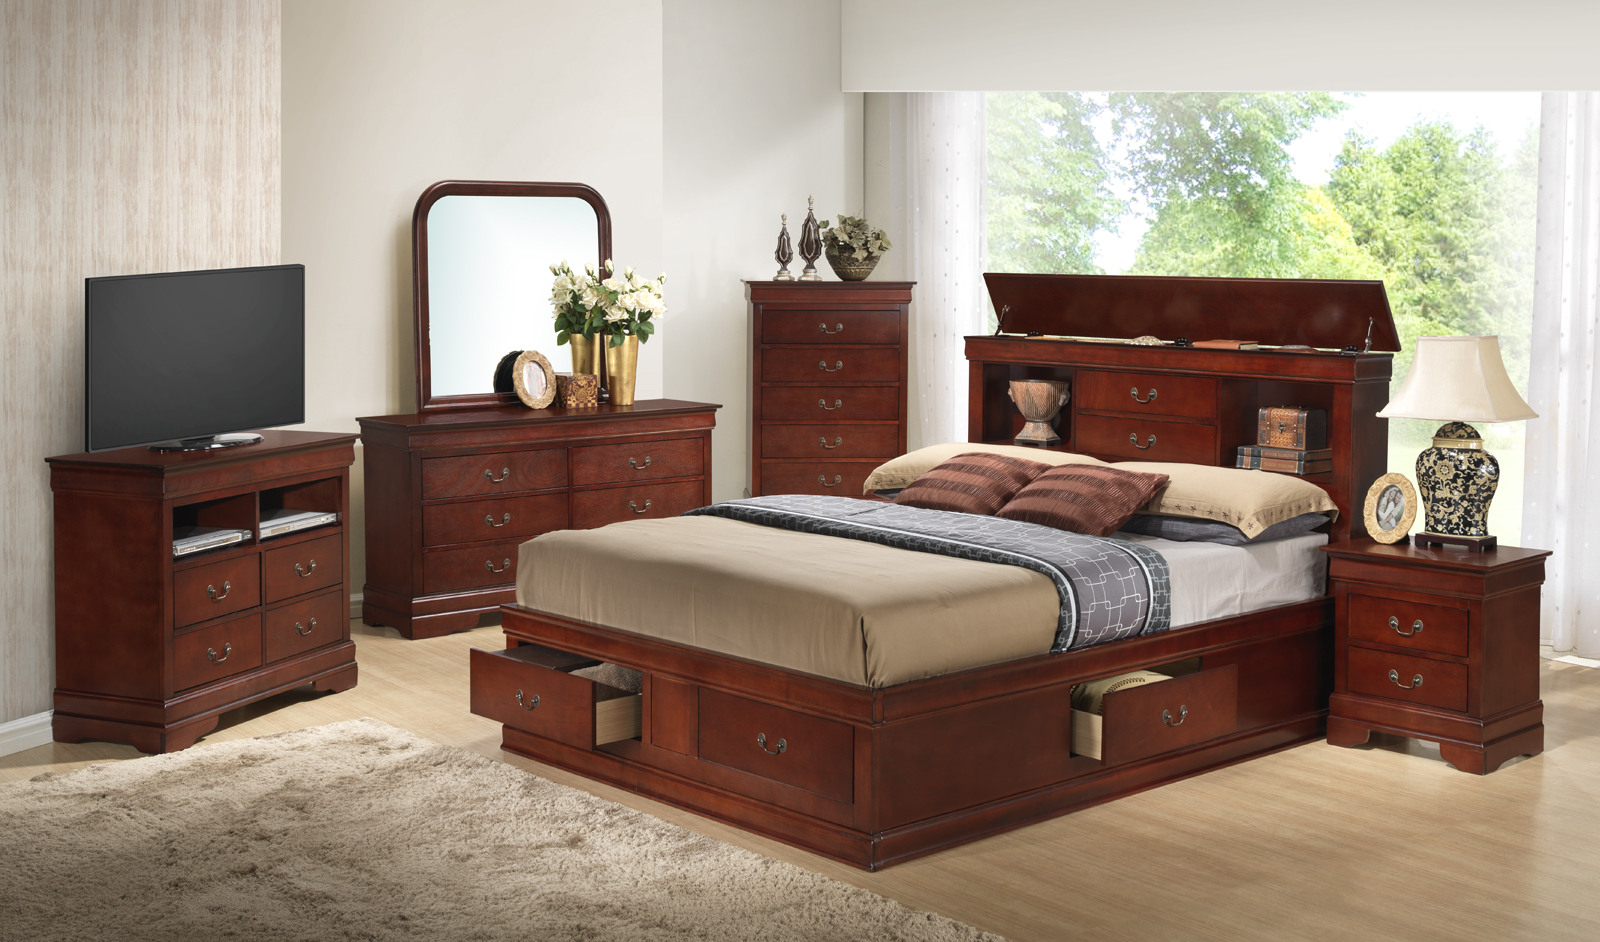 Glory Furniture G3100 Storage Bedroom Set In Cherry 1stopbedrooms